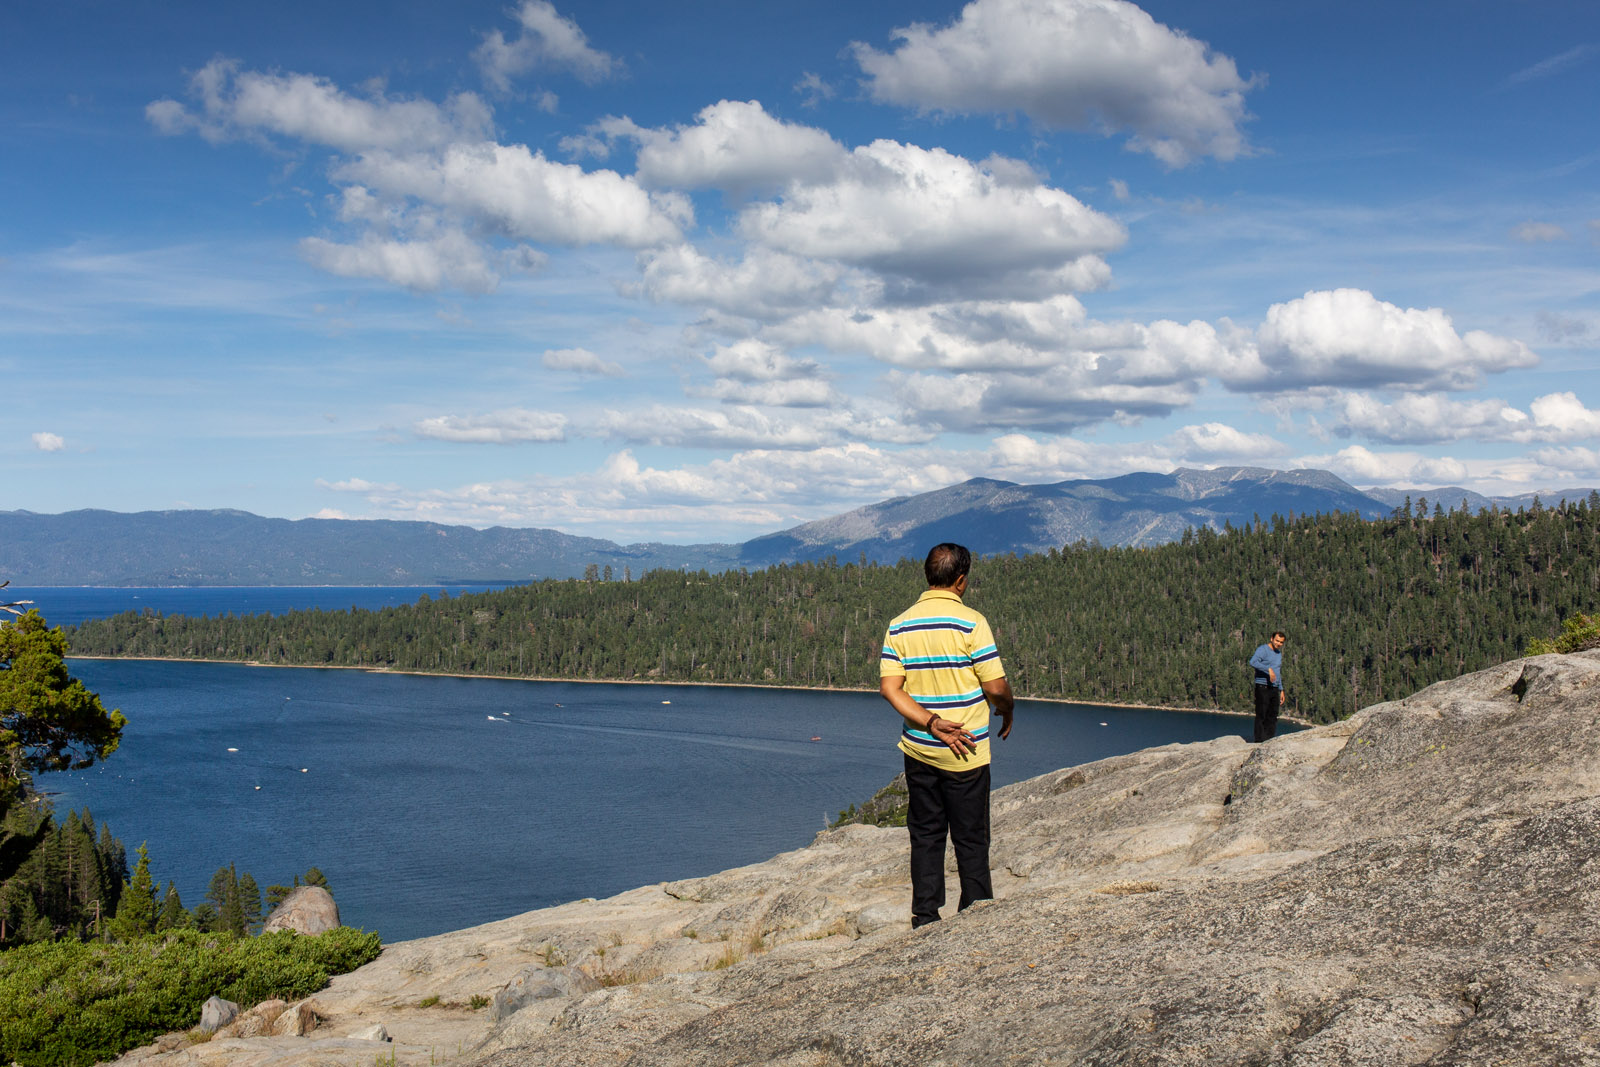 Lake Tahoe, USA. All rights reserved © Tomas Bertelsen